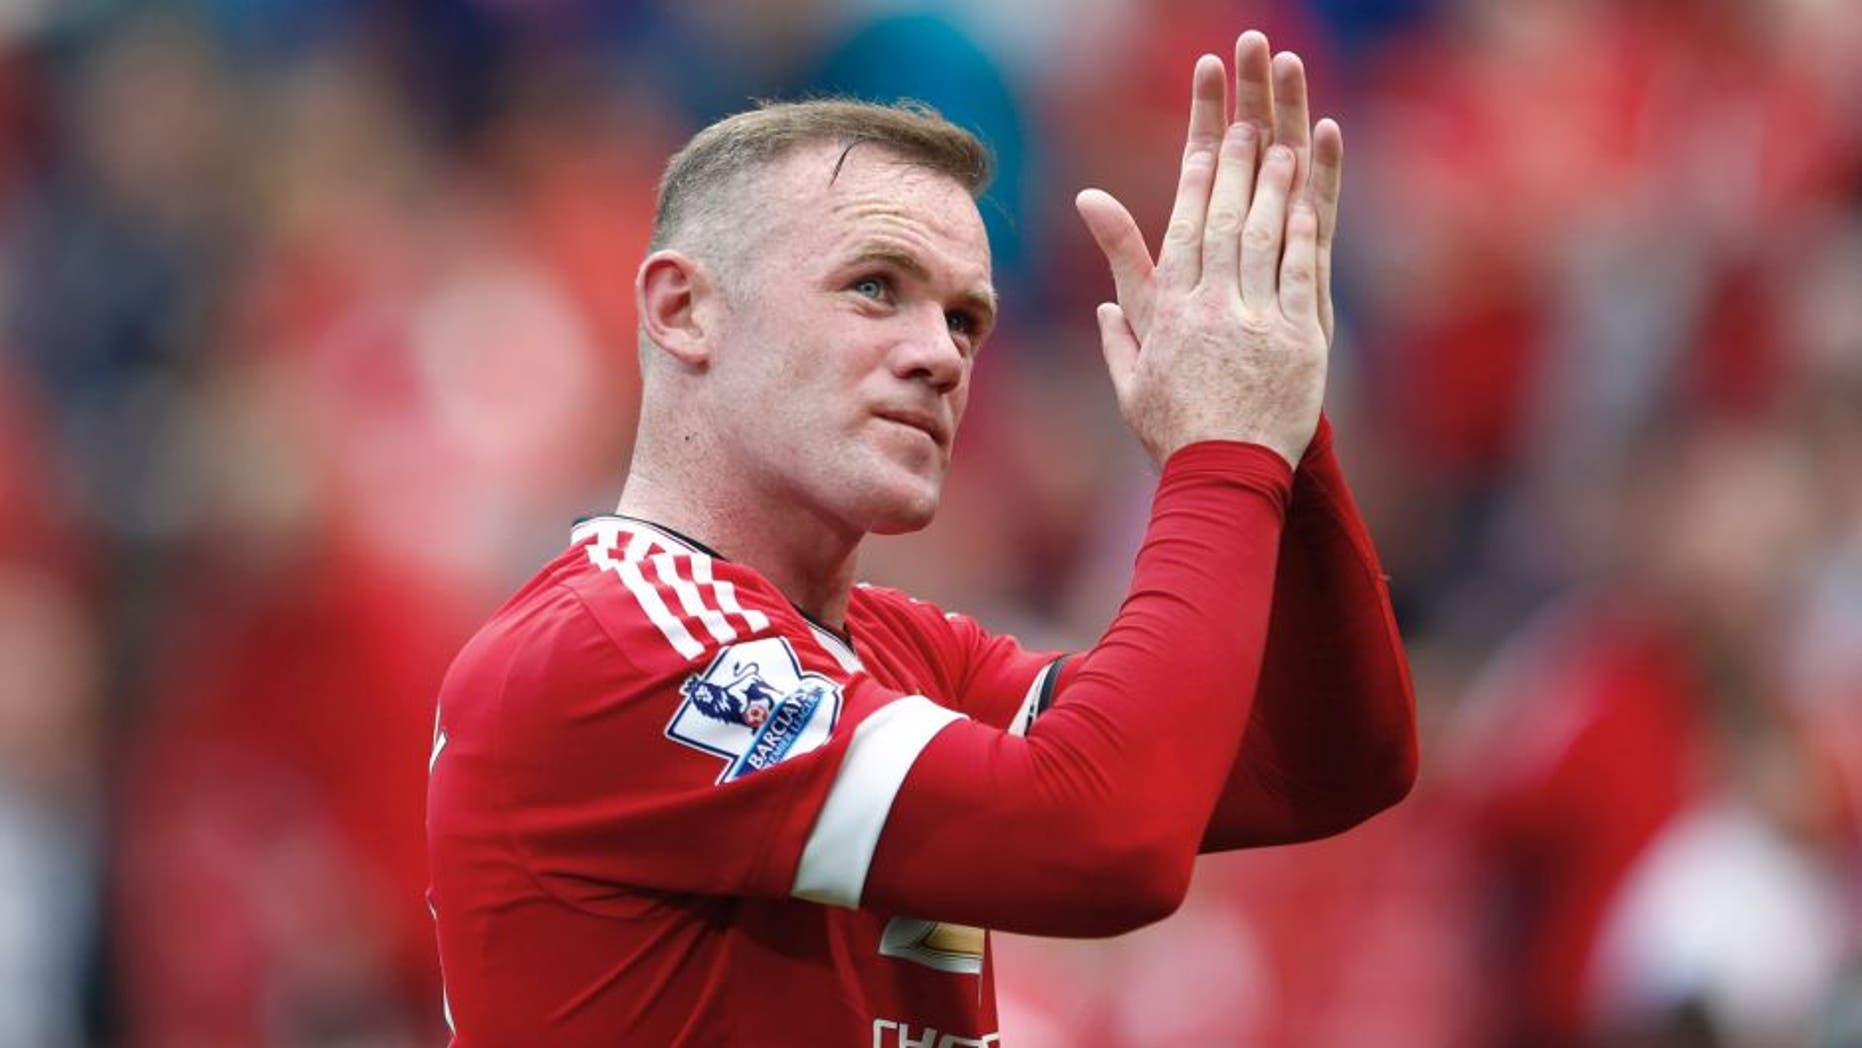 MANCHESTER, ENGLAND - AUGUST 22: Wayne Rooney of Manchester United applauds crowds after his team's 0-0 draw in the Barclays Premier League match between Manchester United and Newcastle United at Old Trafford on August 22, 2015 in Manchester, England. (Photo by Julian Finney/Getty Images)